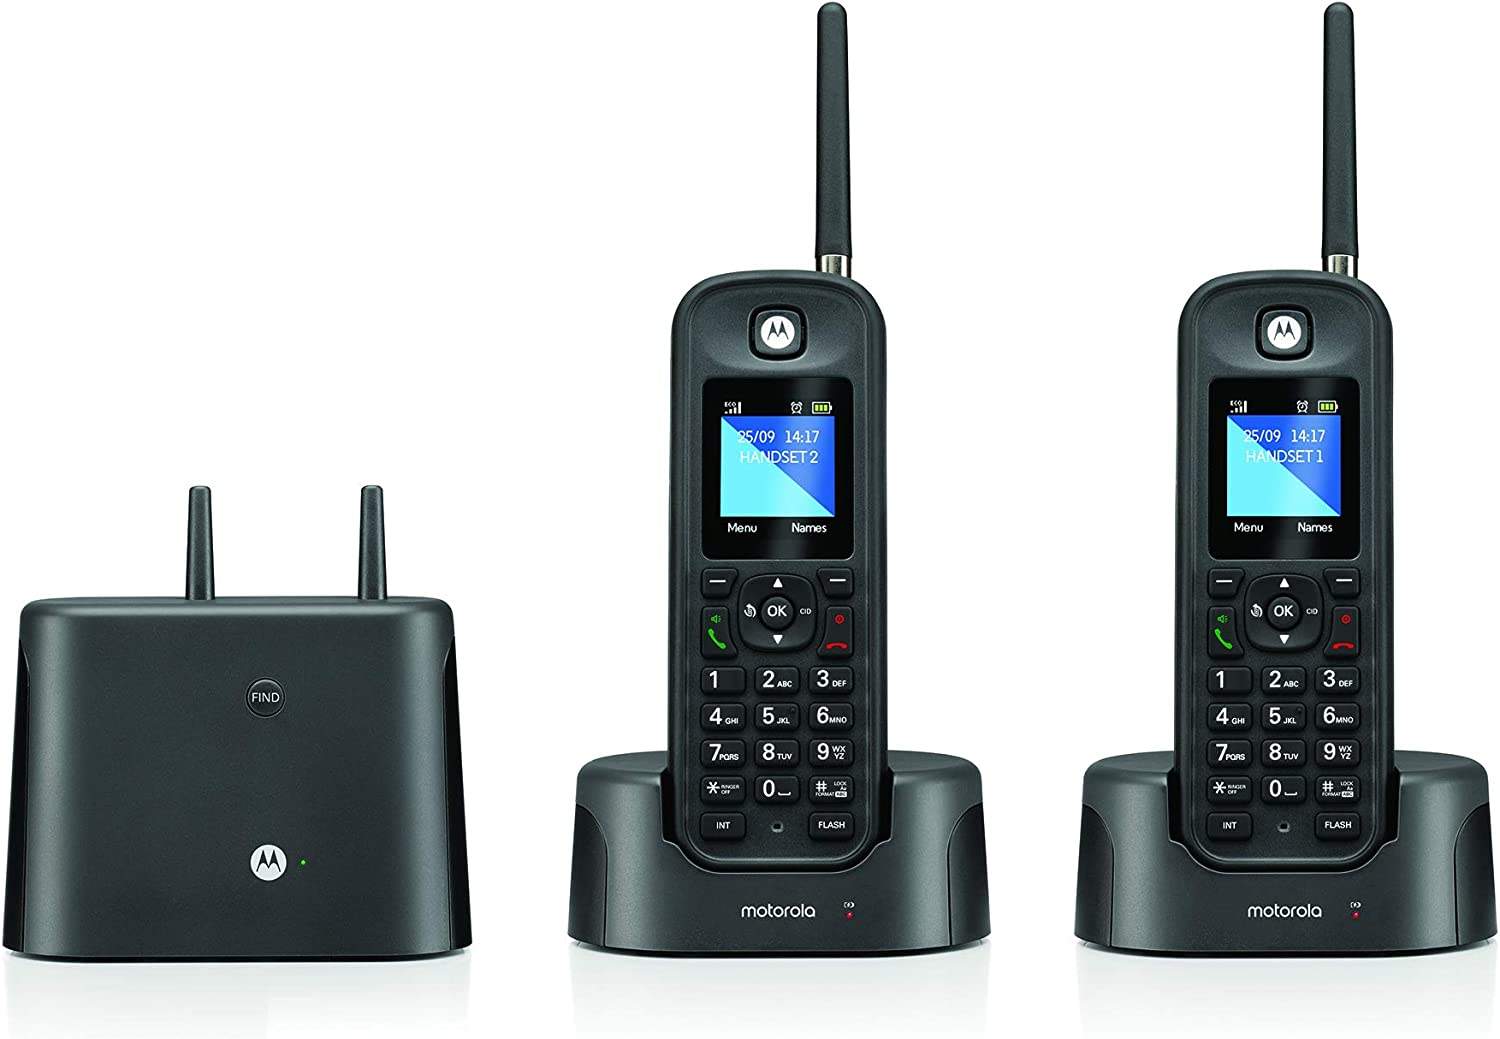 Motorola O212 DECT 6.0 Long Range Cordless Phone, Water & Dust Resistant, IP67 Certified, Black, 2 Handsets